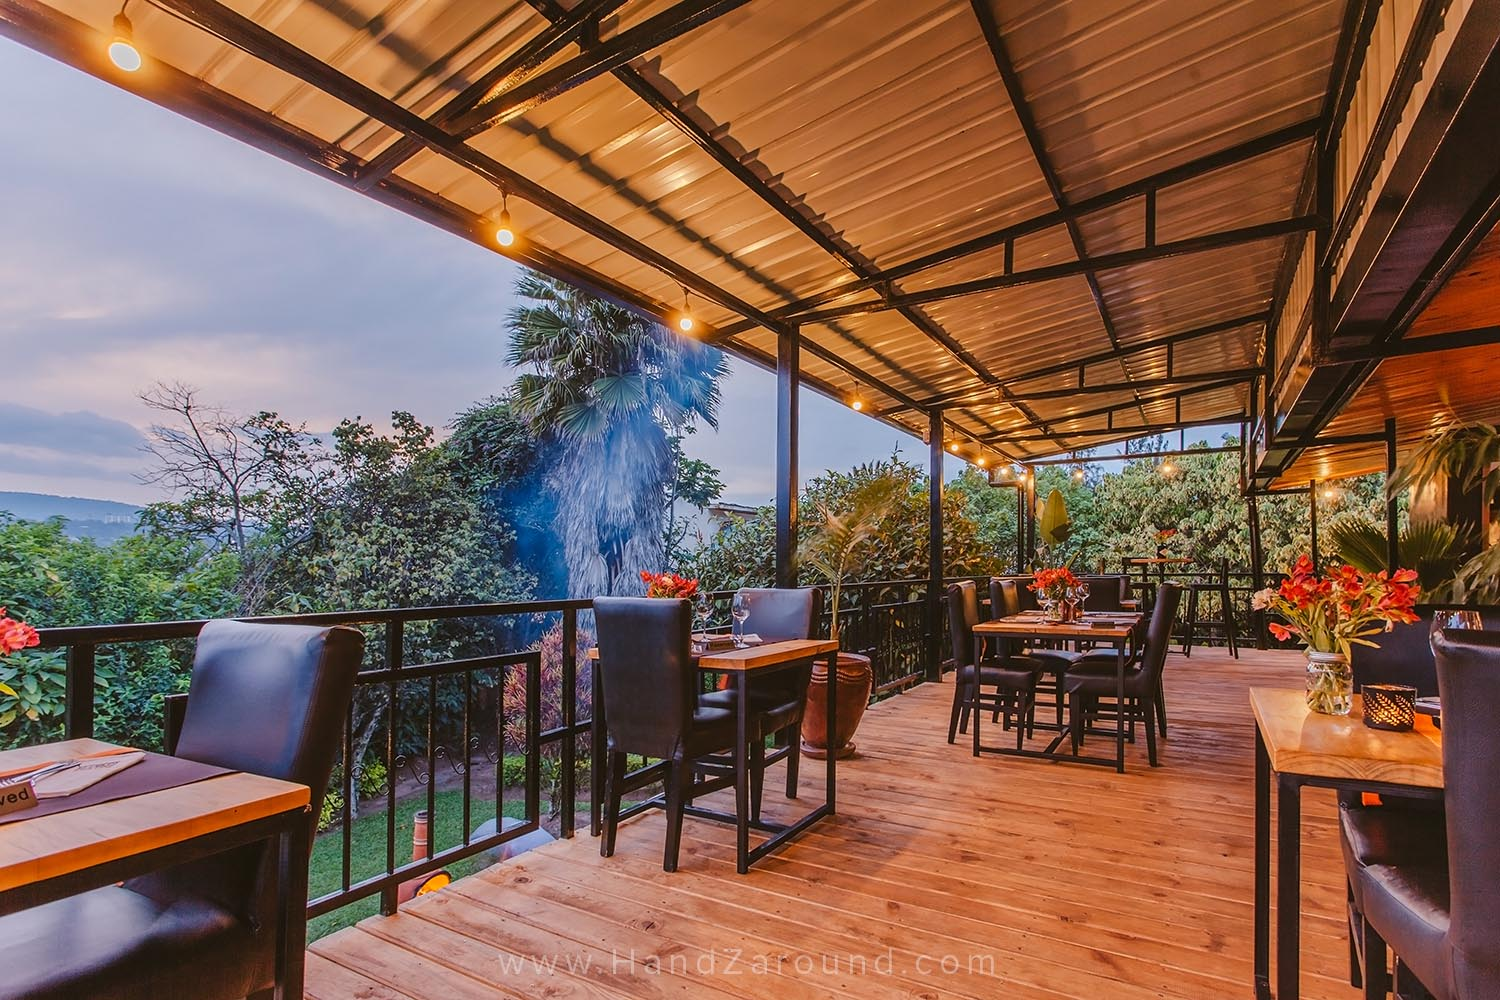 Where to eat in Kigali Rwanda best places poivre Noir handzaround 2.jpg